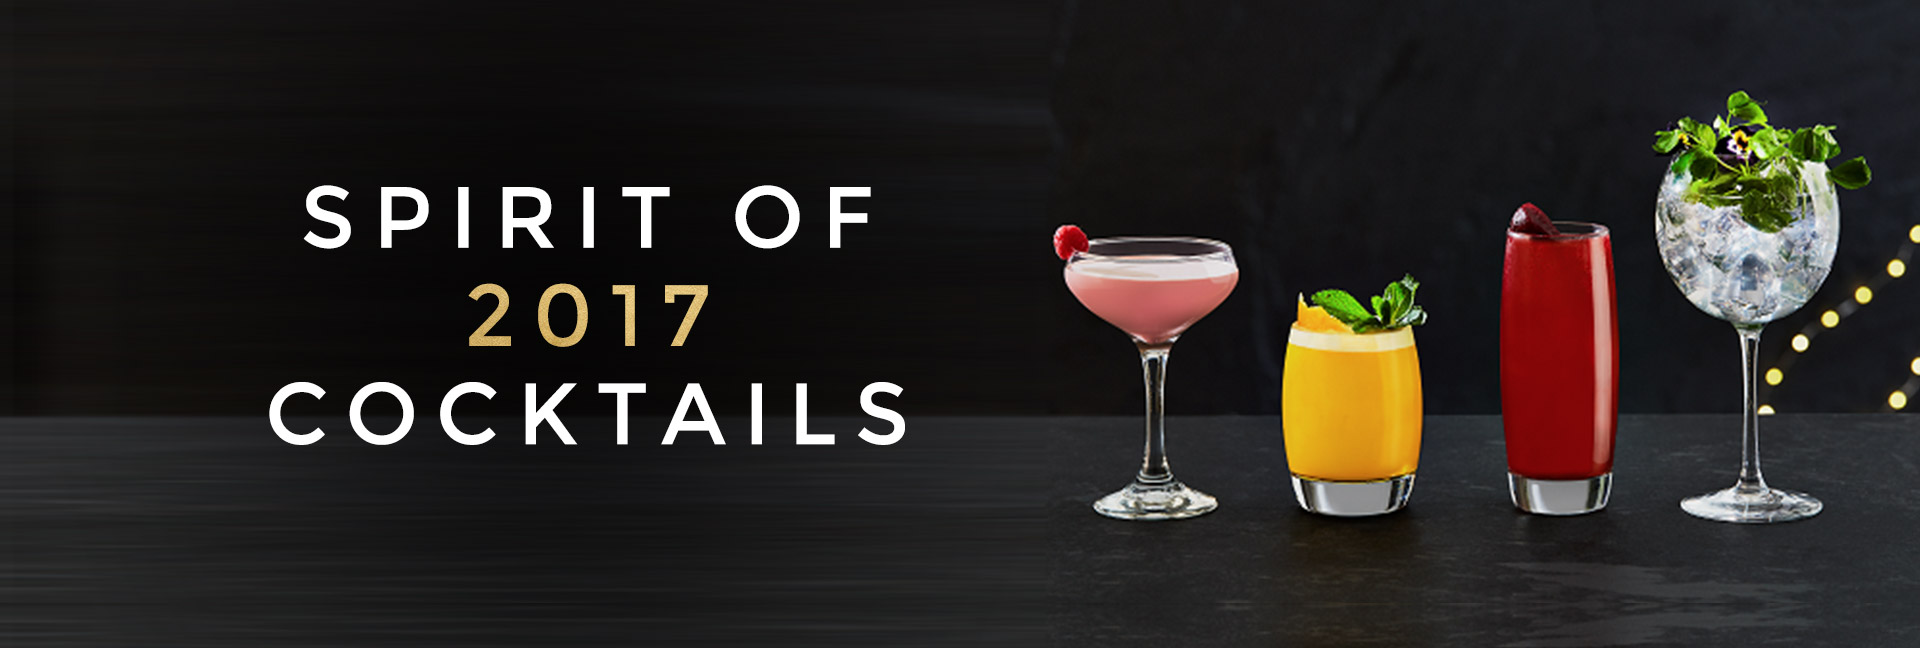 Spirit of 2017 cocktails at All Bar One Newhall Street Birmingham